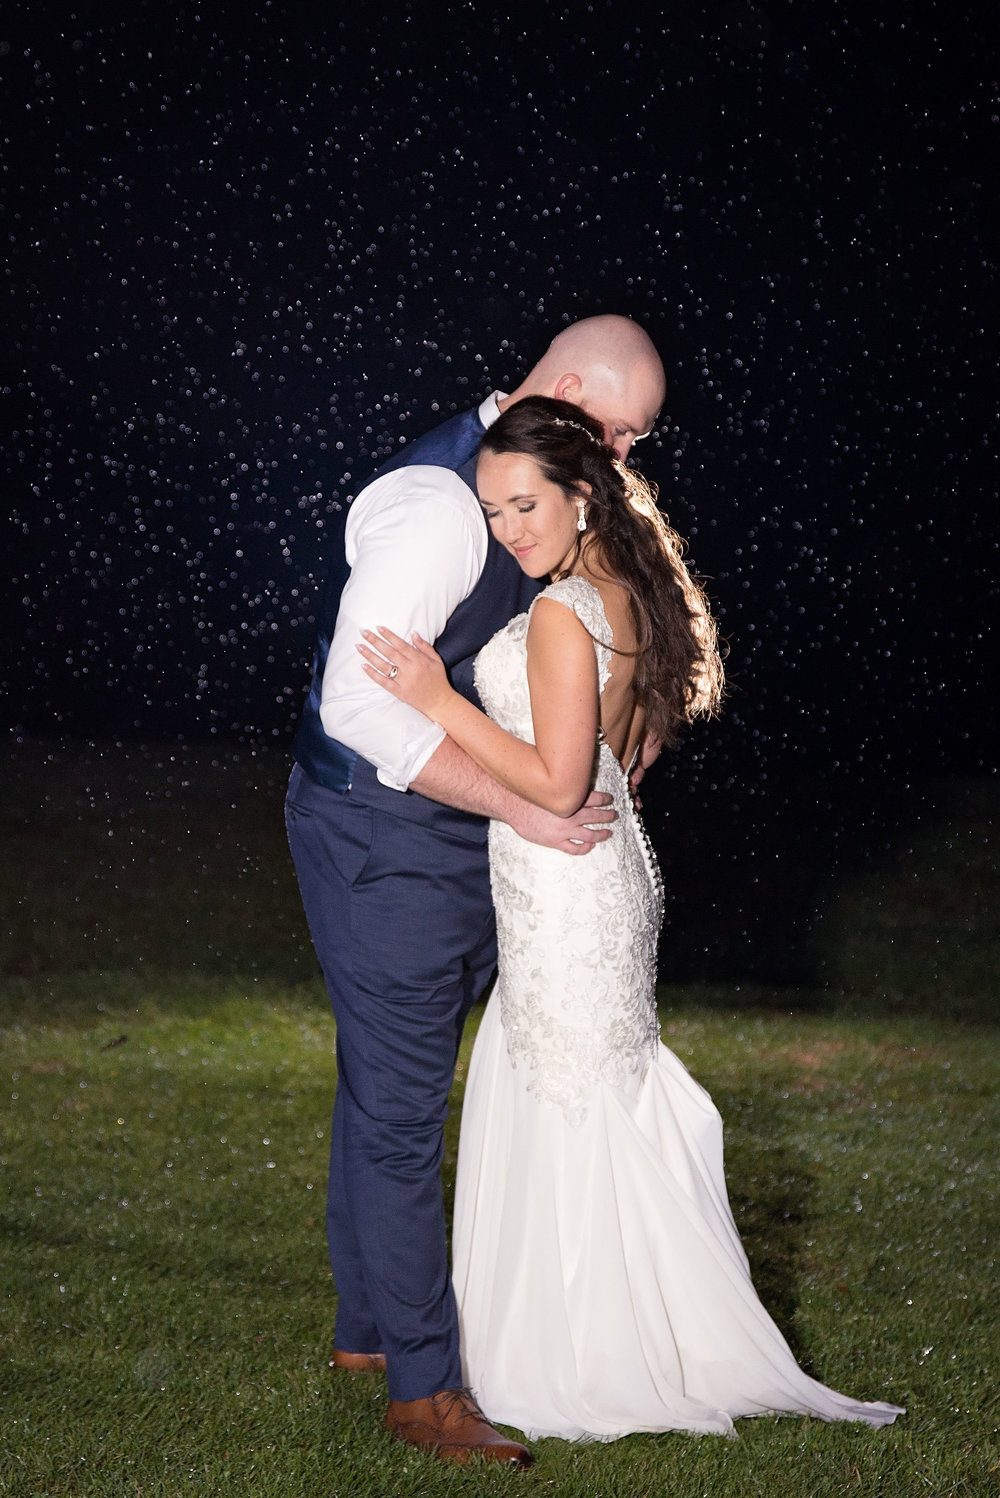 Nighttime rain photo magic by the amazing  Lindsey Anderson Photography .